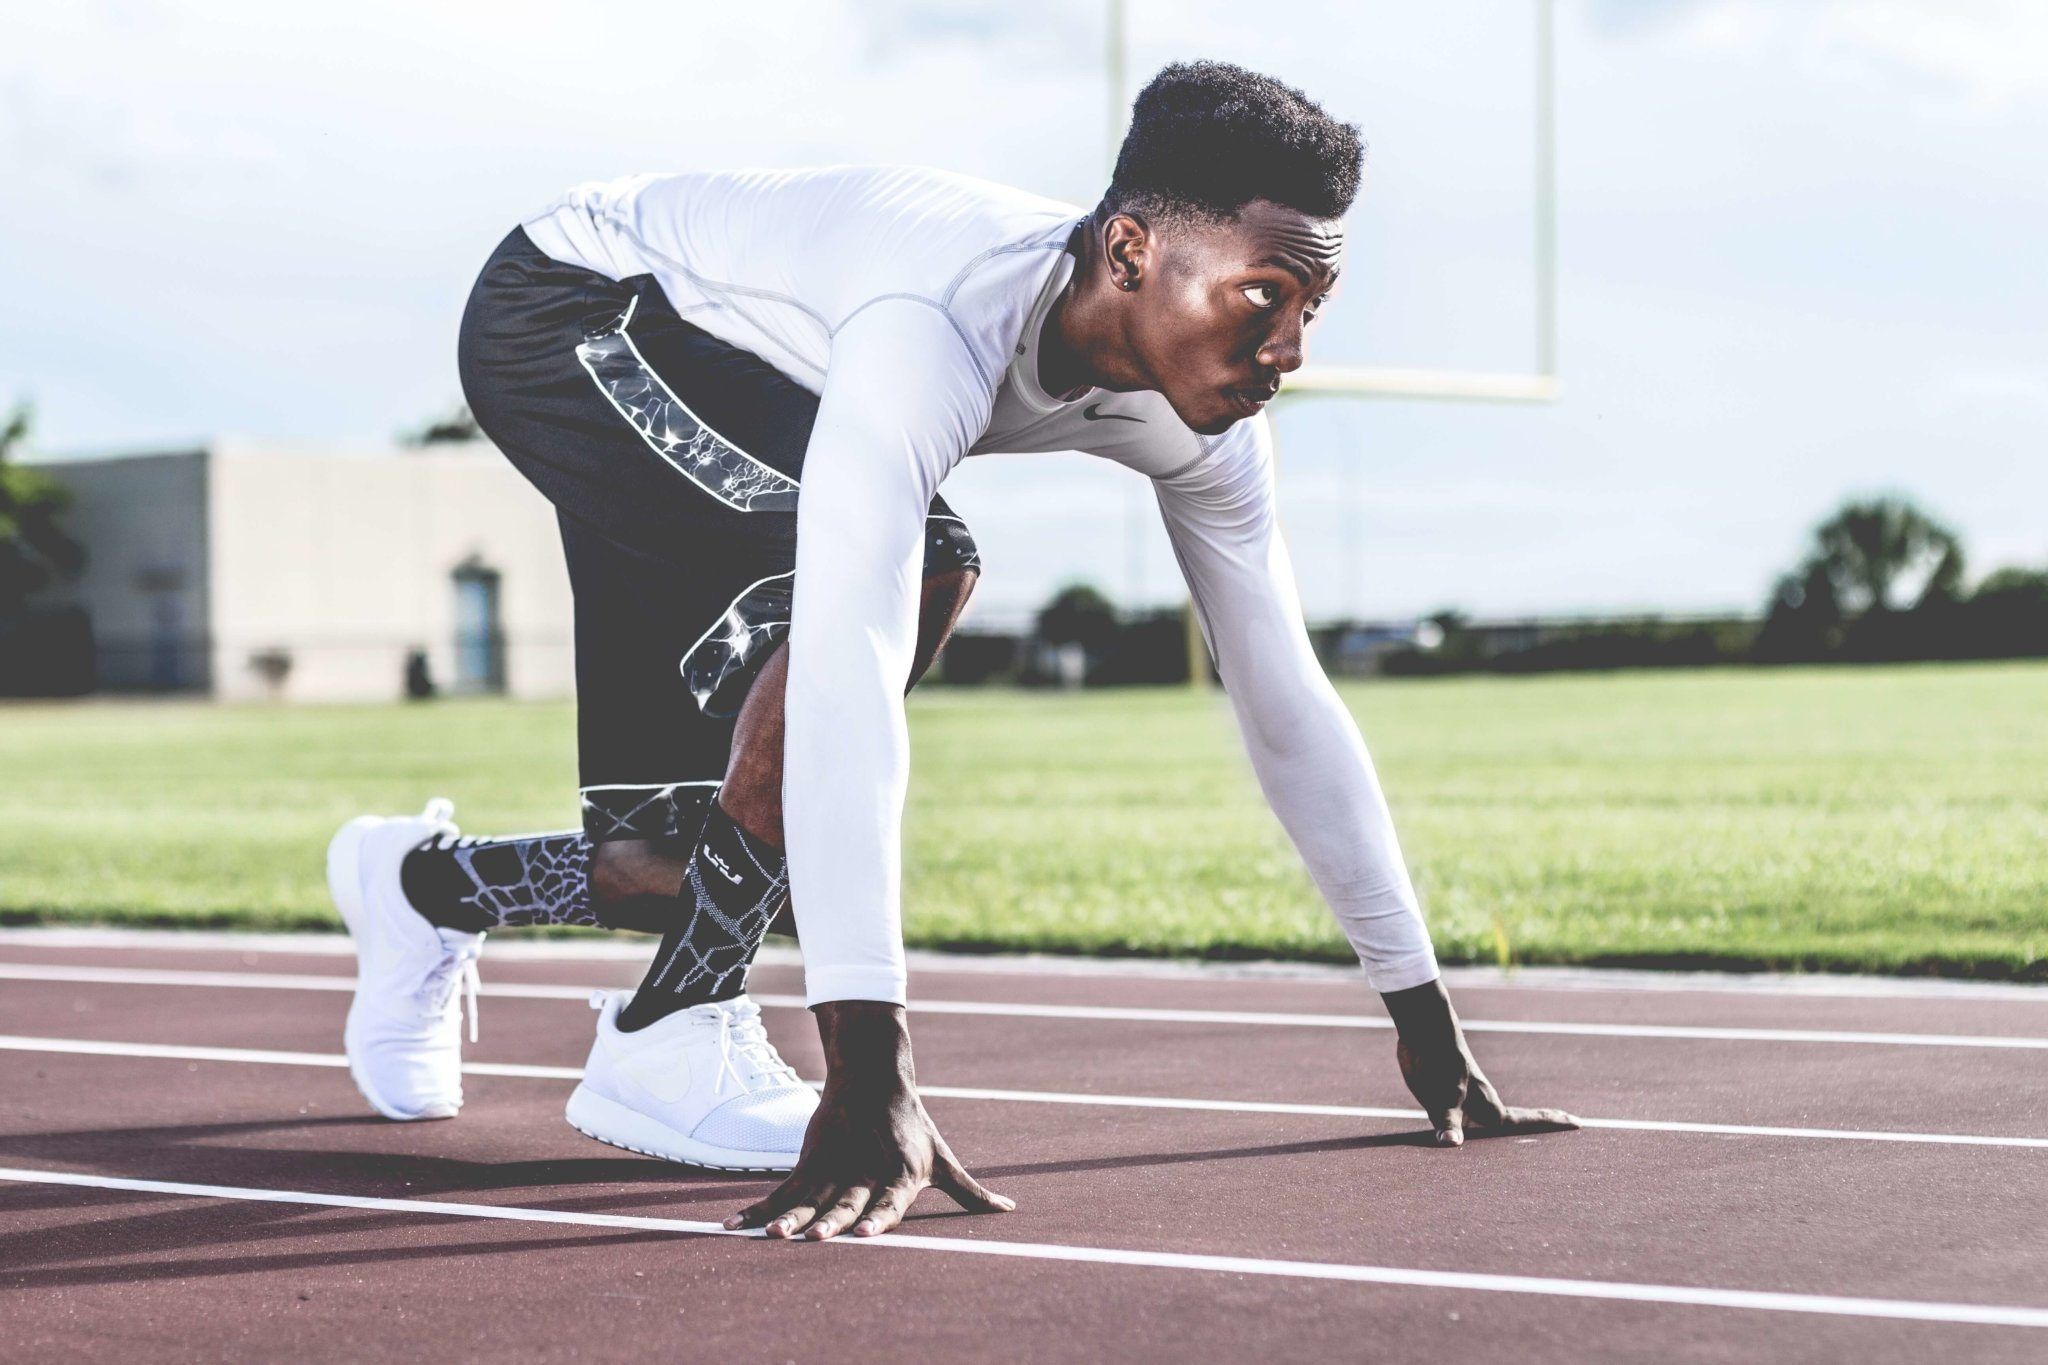 5 Reasons Why Athlete Self-Assessments Significantly Improve Performance